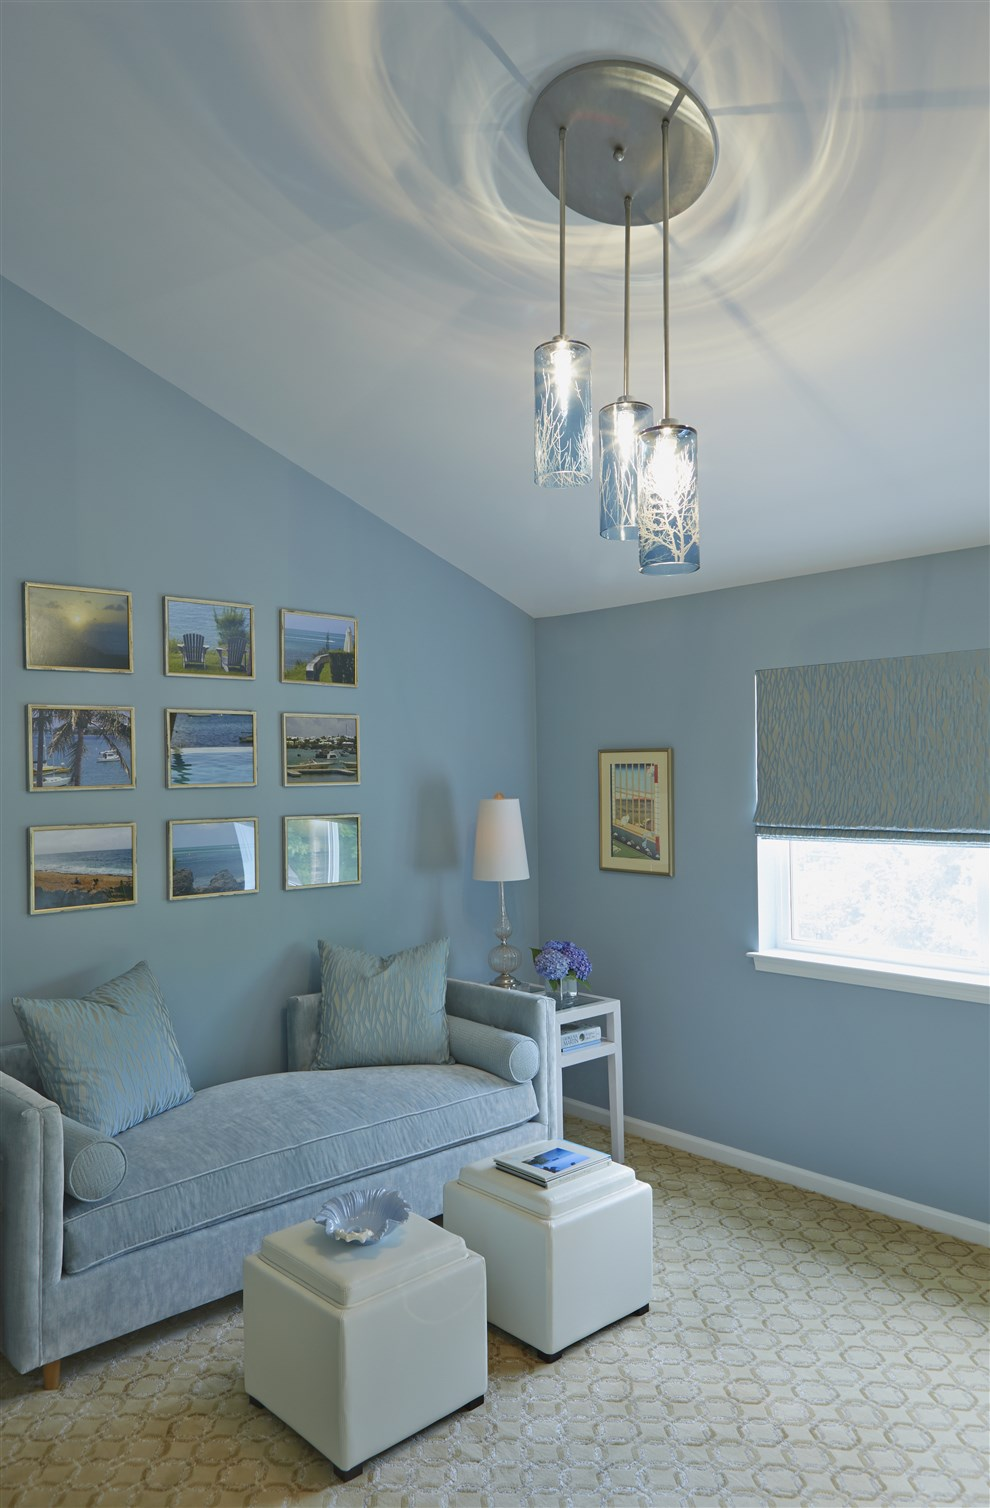 Living room with blue and white couches